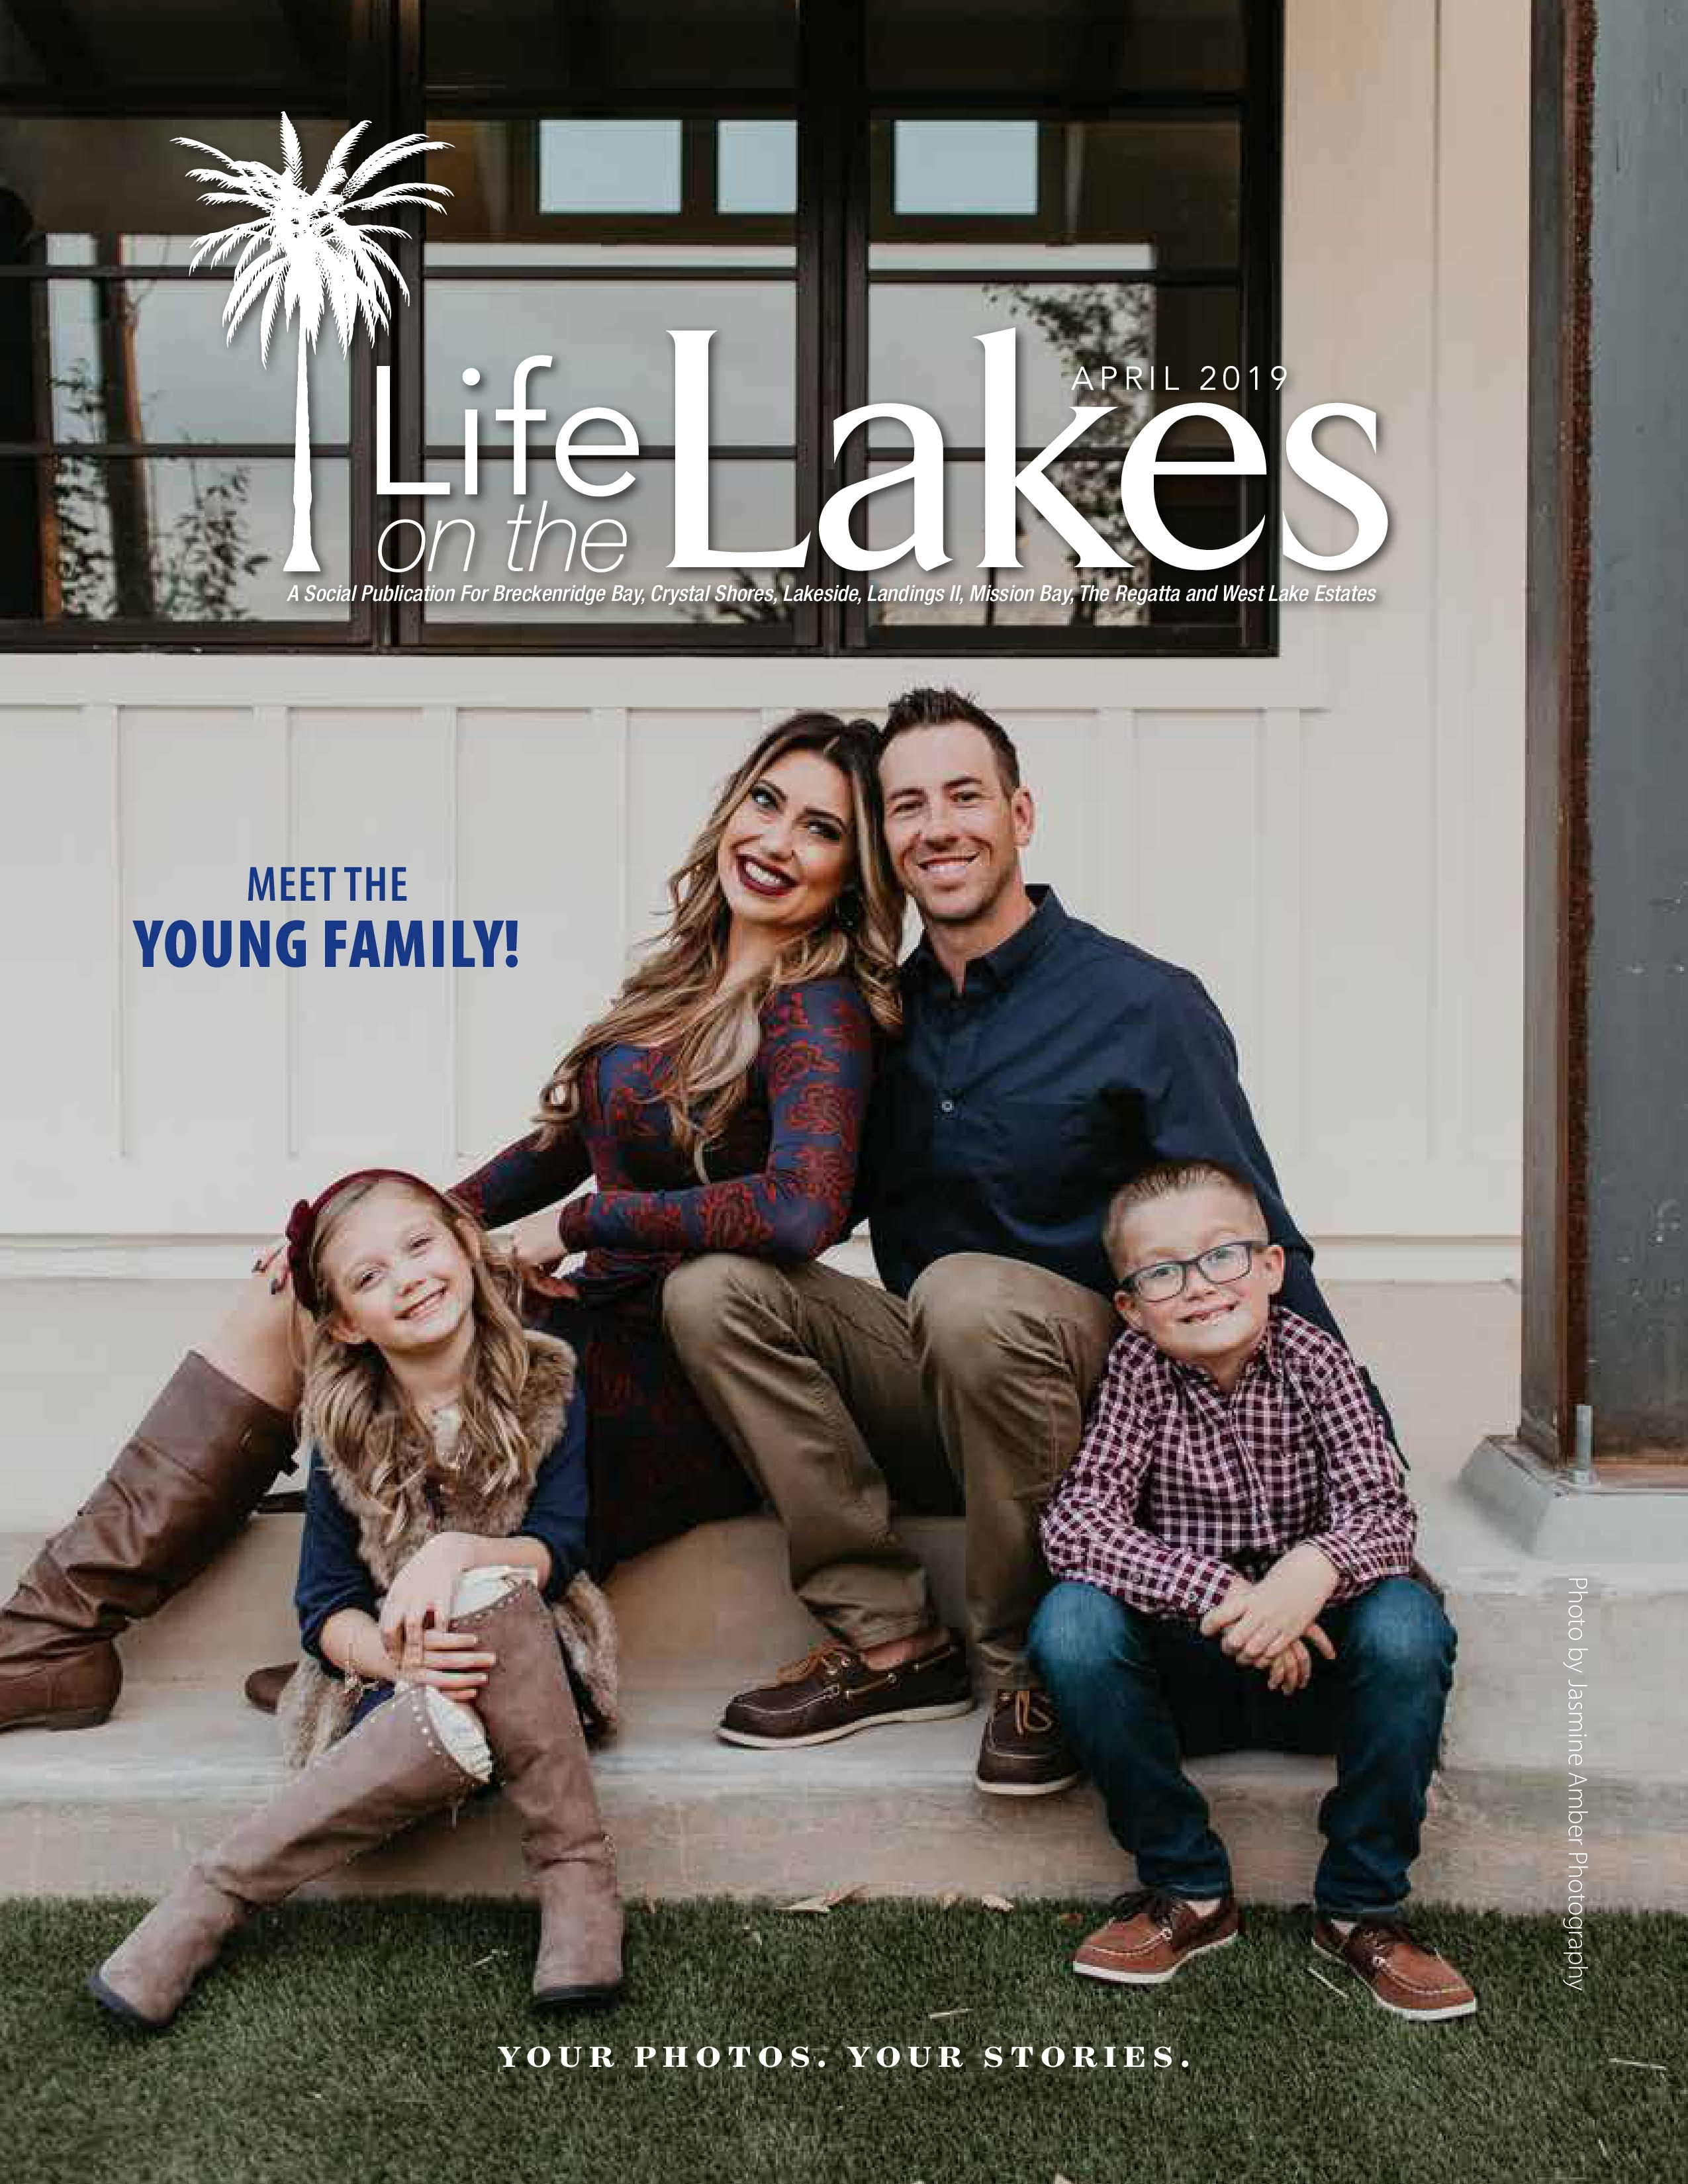 Apr 2019 life on the lakes page 1